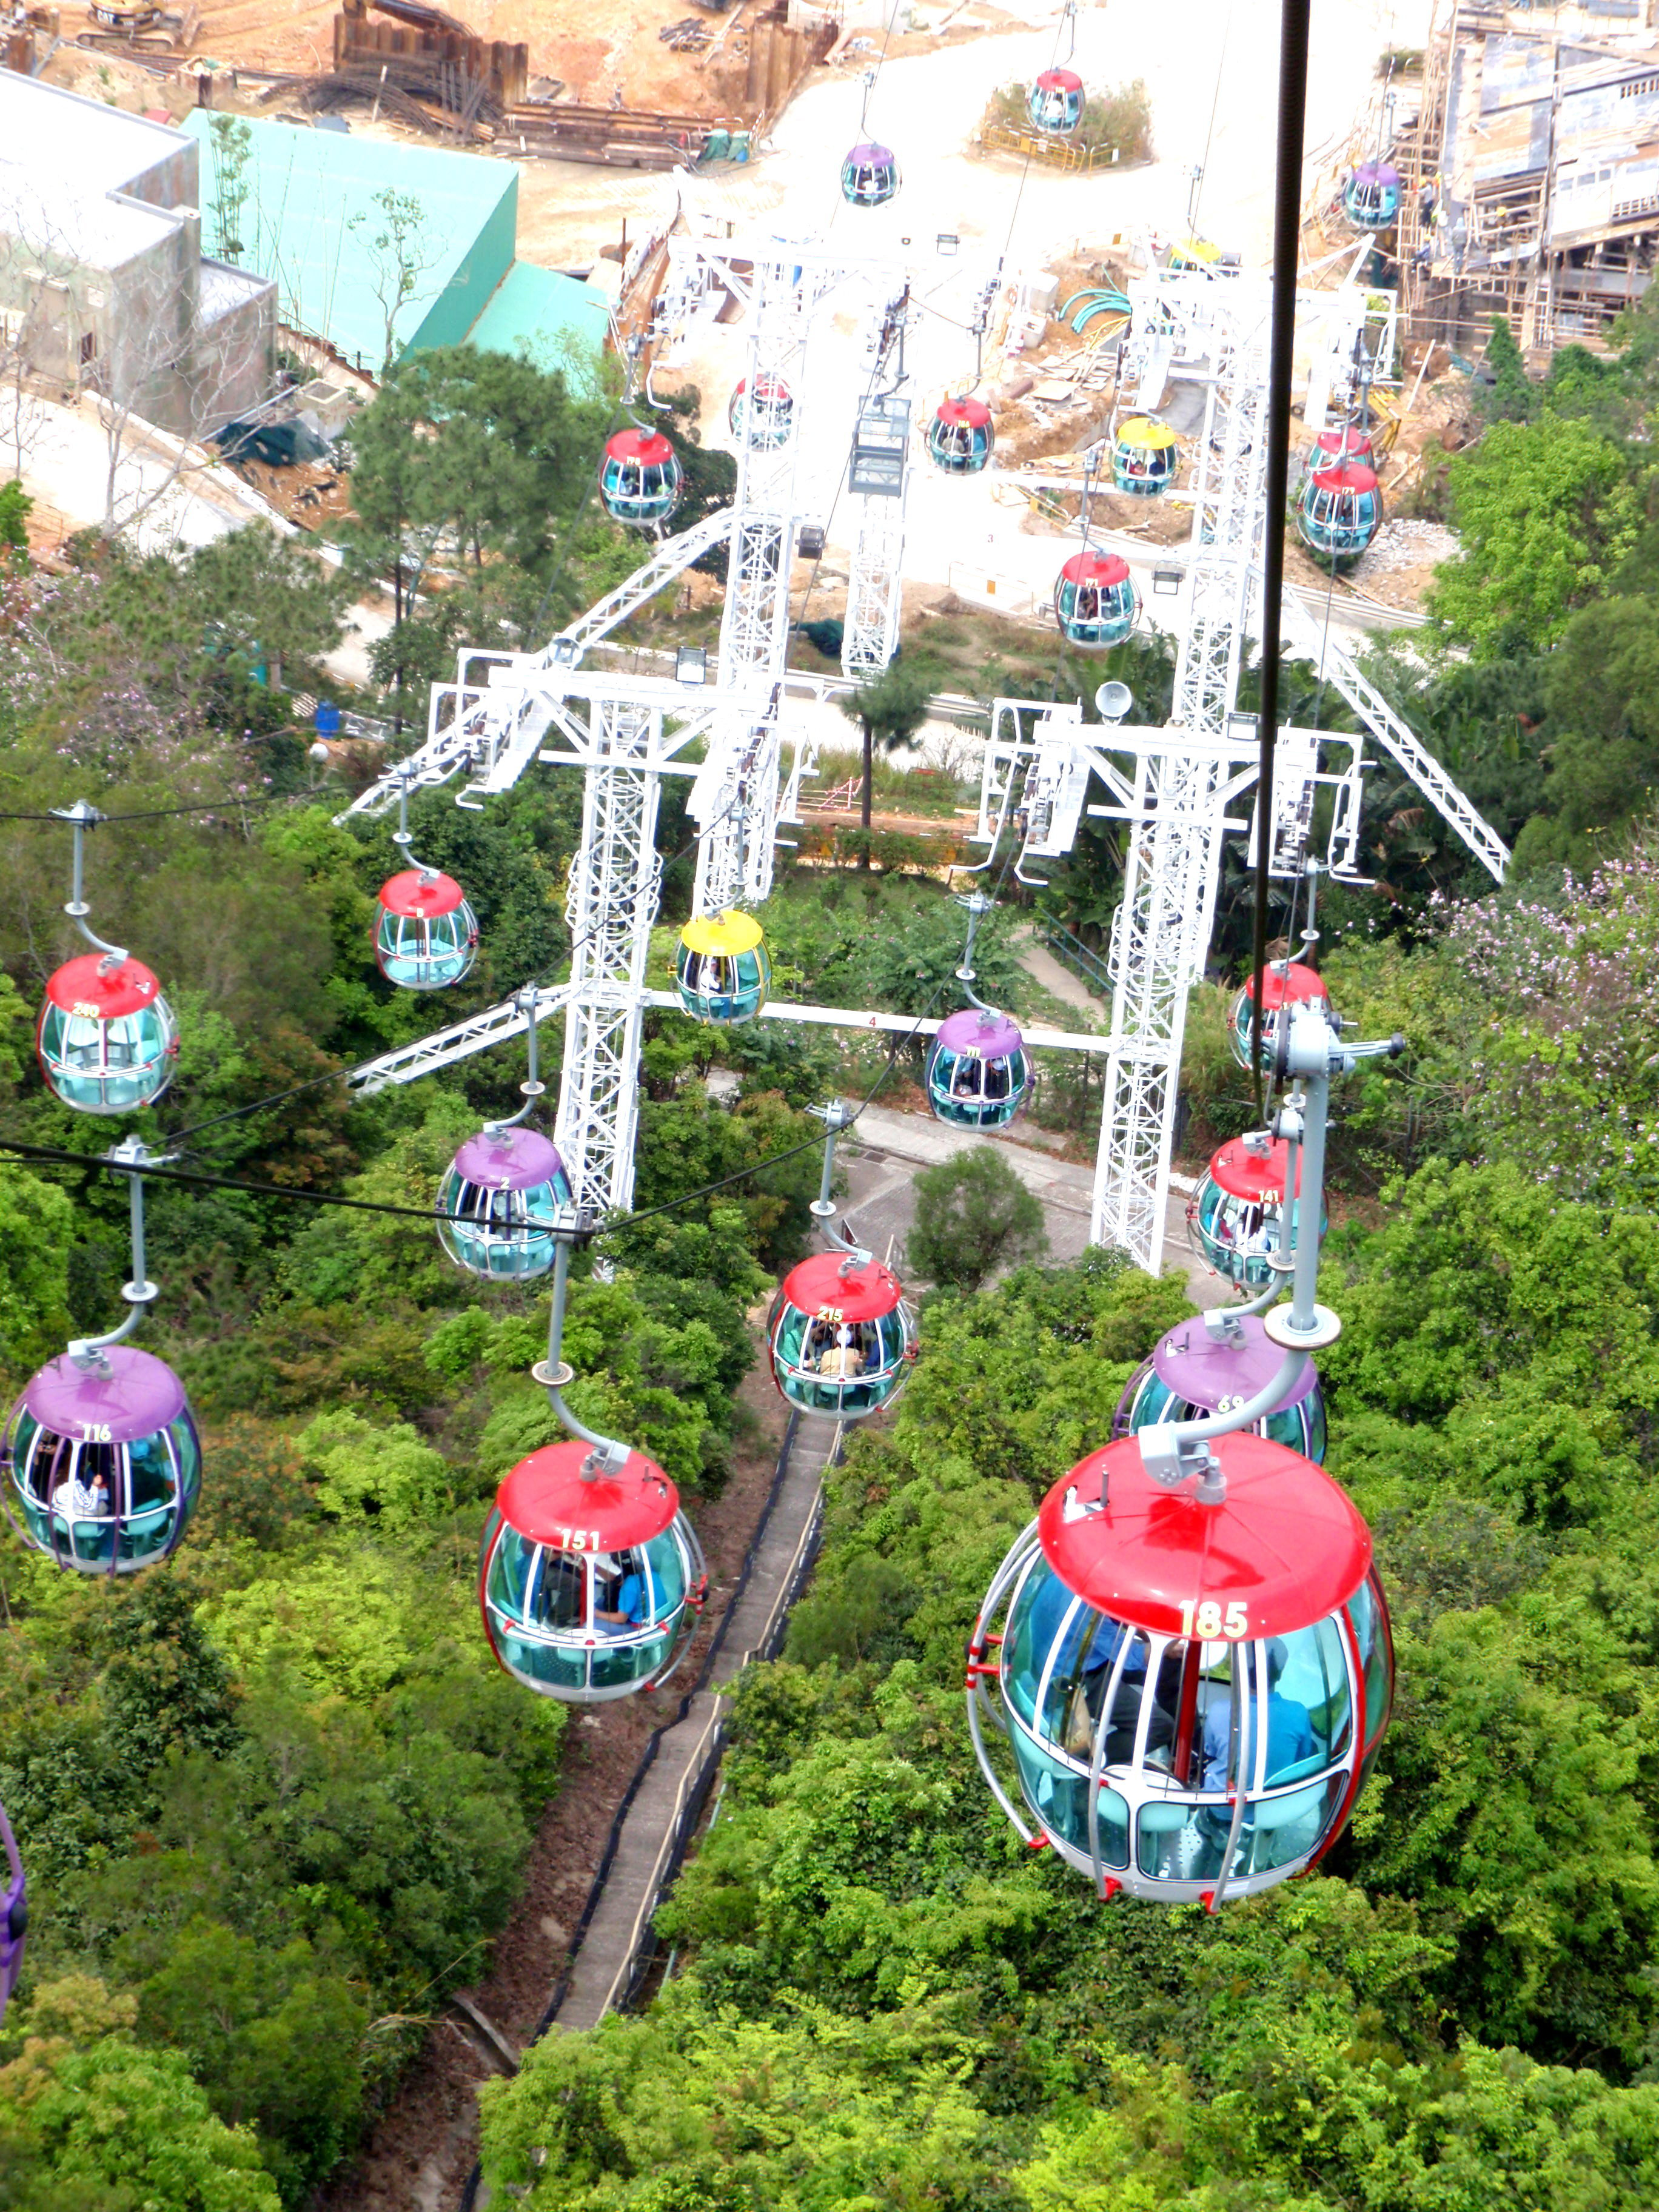 the case of ocean park hong kong Ocean square at ocean park's main entrance the park celebrated its 40th anniversary in 2017 located at wong chuk hang near aberdeen on the south side of hong kong island, ocean park opened in 1977 and was hong kong's first theme park.